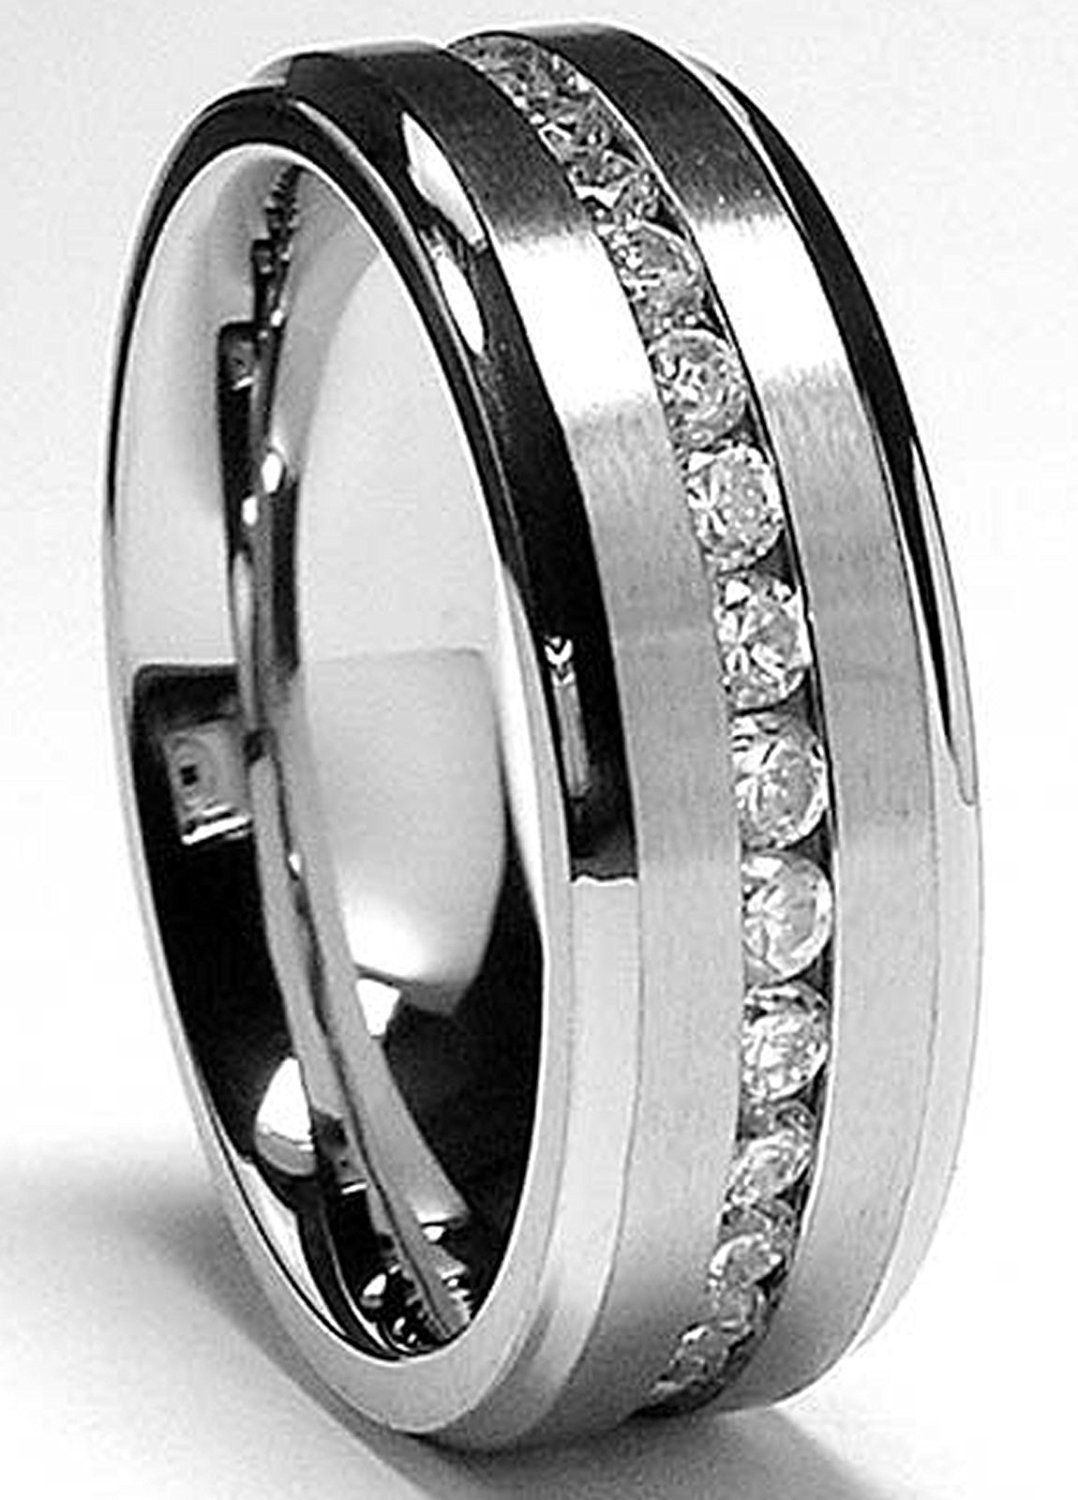 7MM Men's Eternity Titanium Ring Wedding Band with Cubic